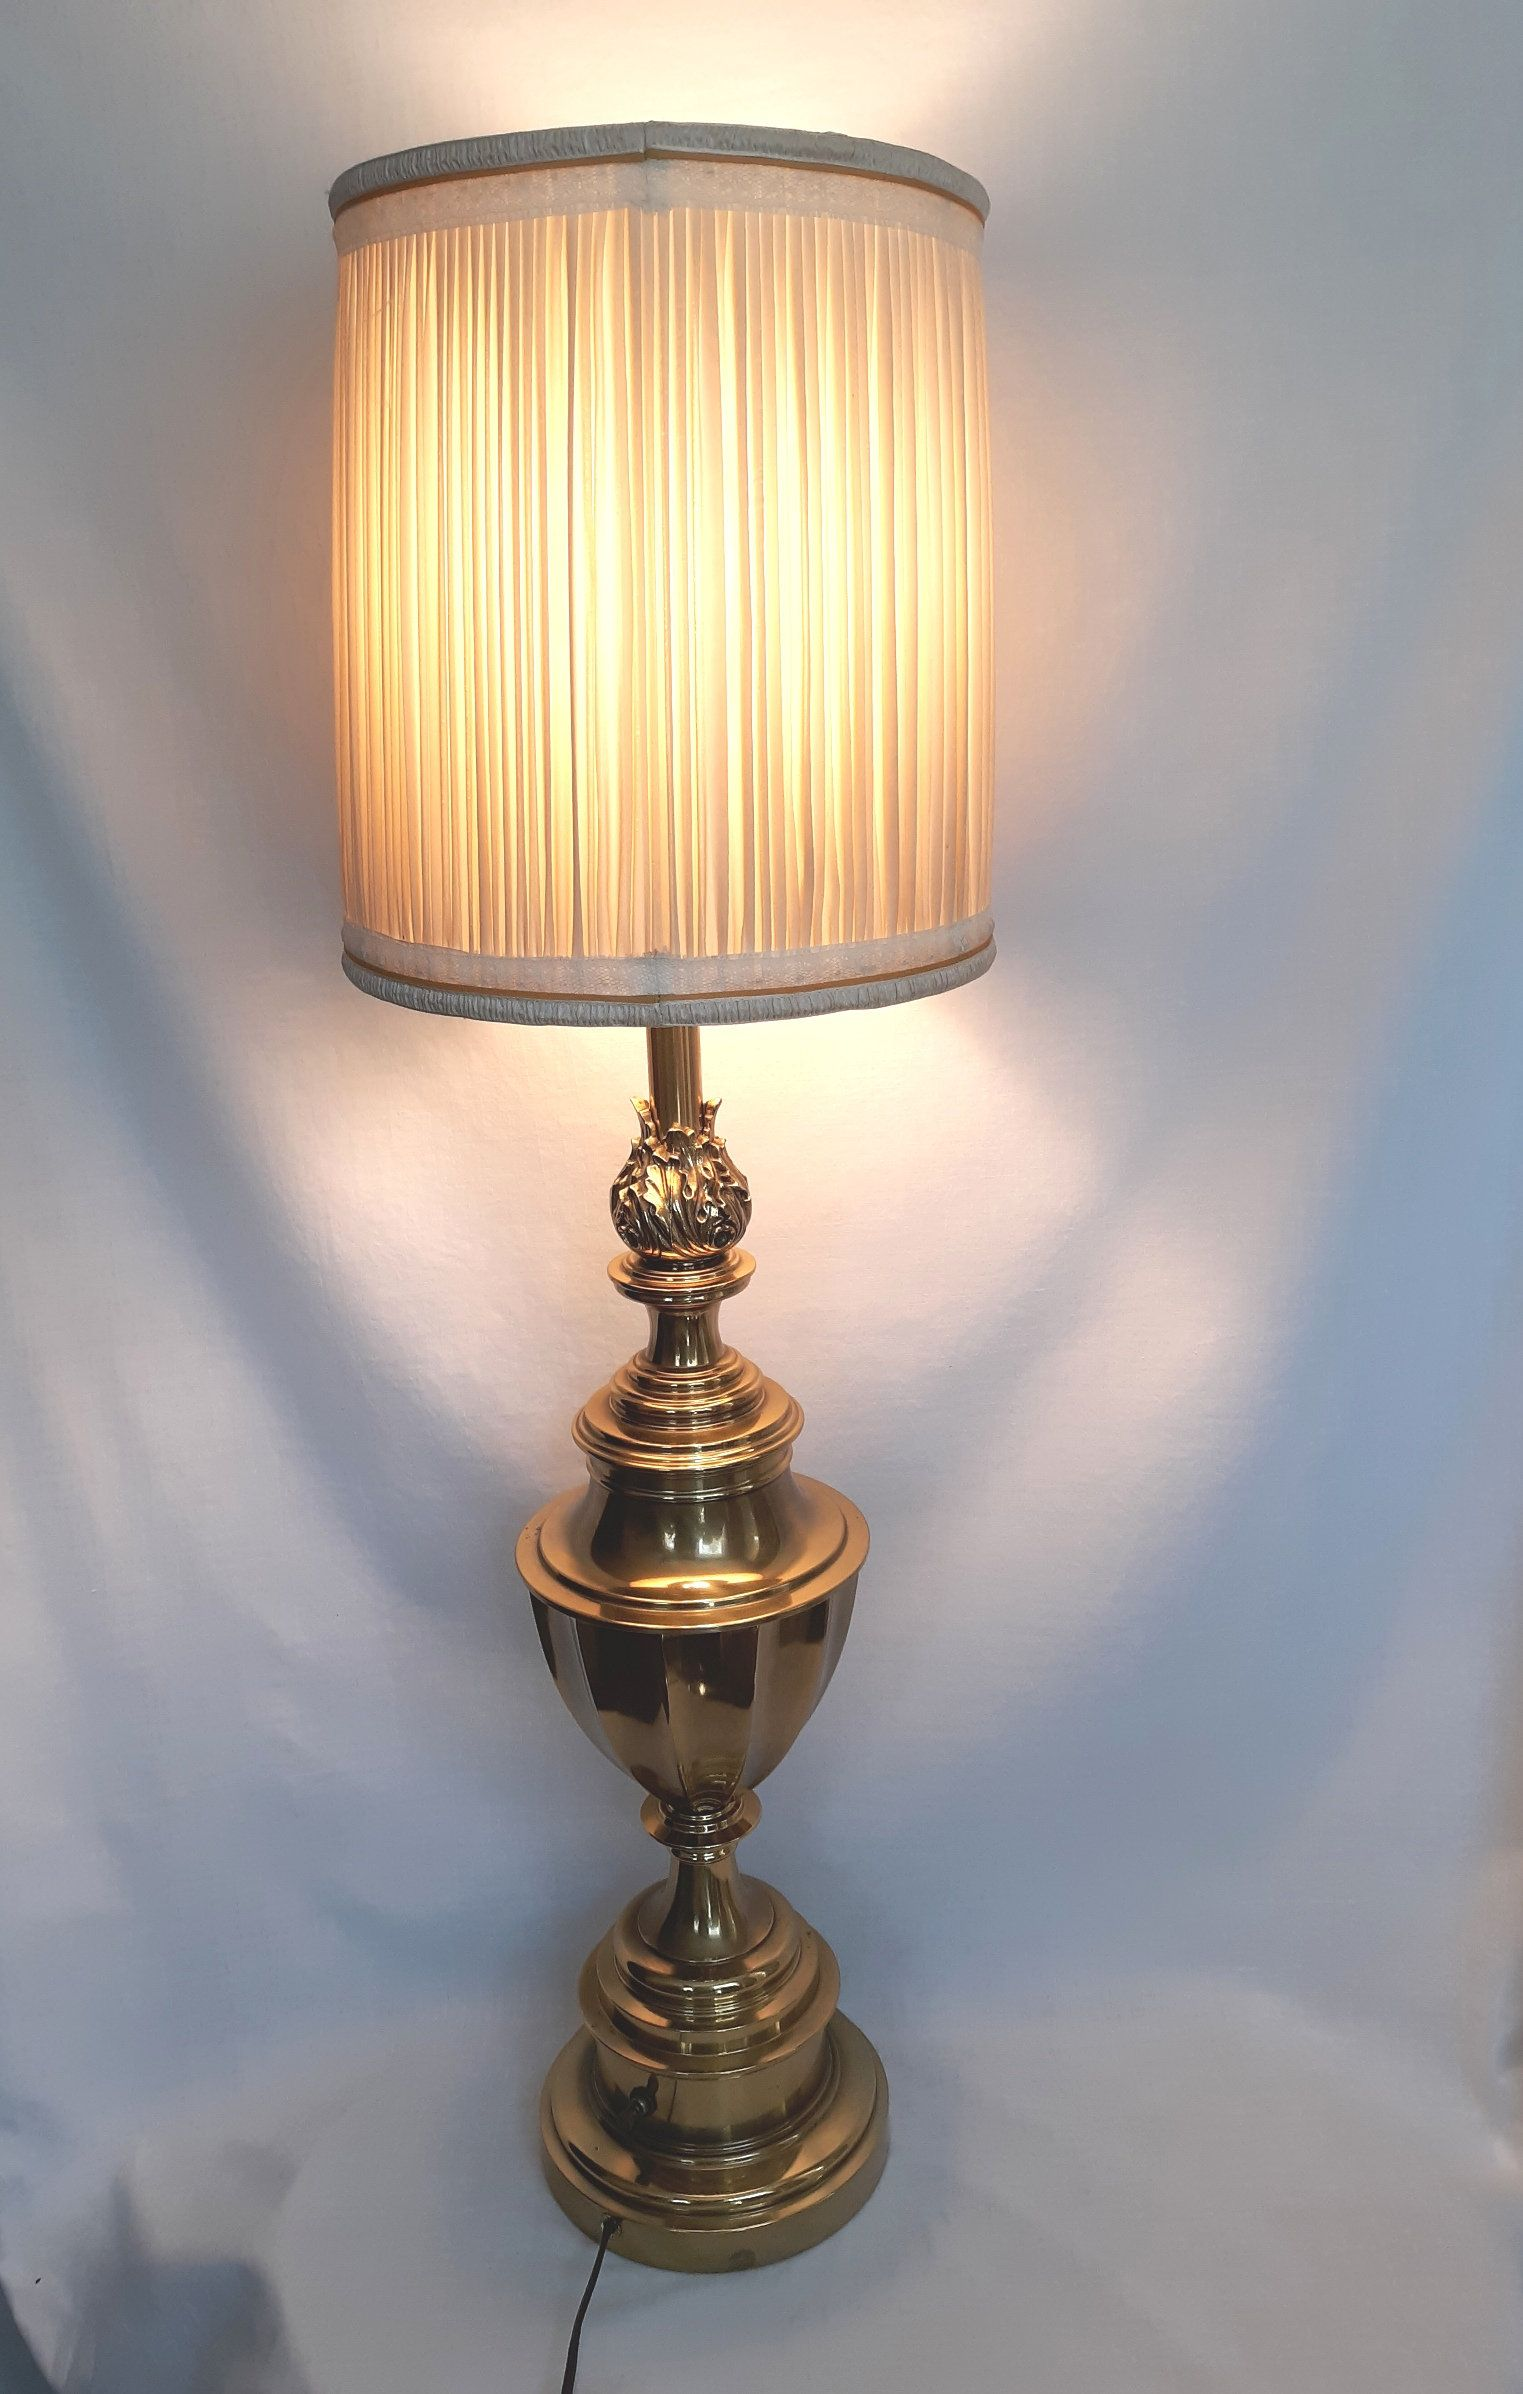 NEW SOLID  BRASS  HORSE  HEAD  ELECTRIC  LIGHTING  LAMP  SHADE  FINIAL